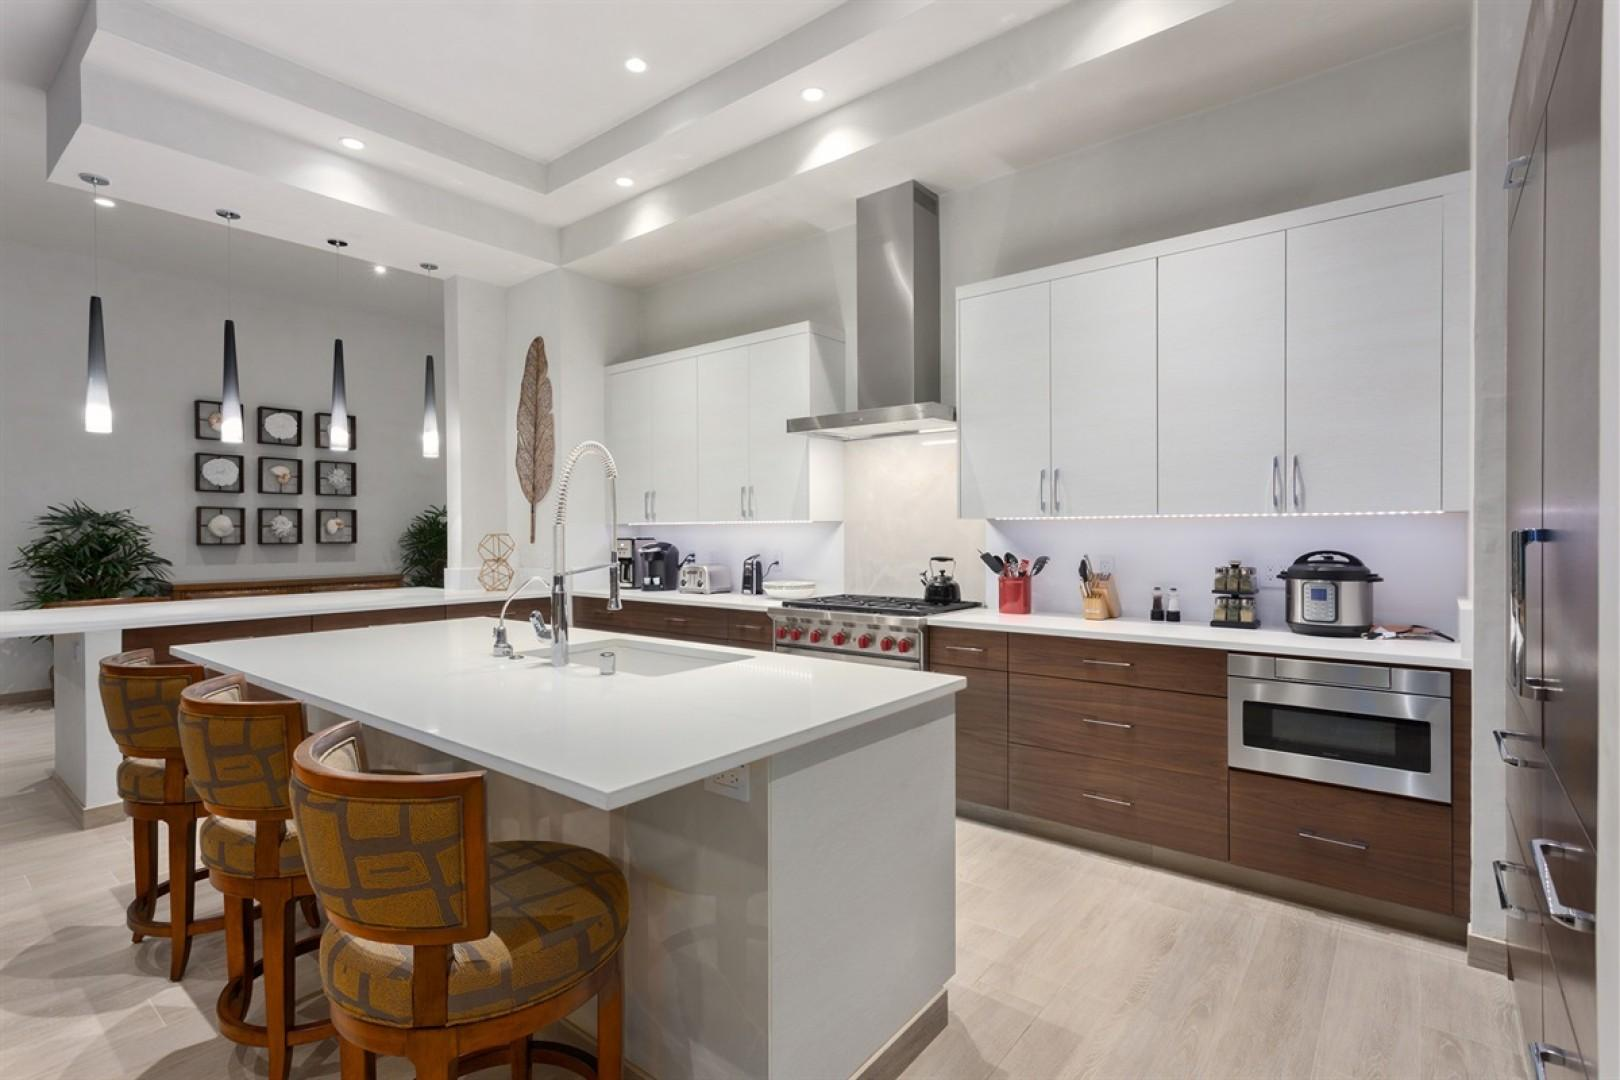 Gleaming top tier appliances in this fully equipped kitchen - a chef's delight!